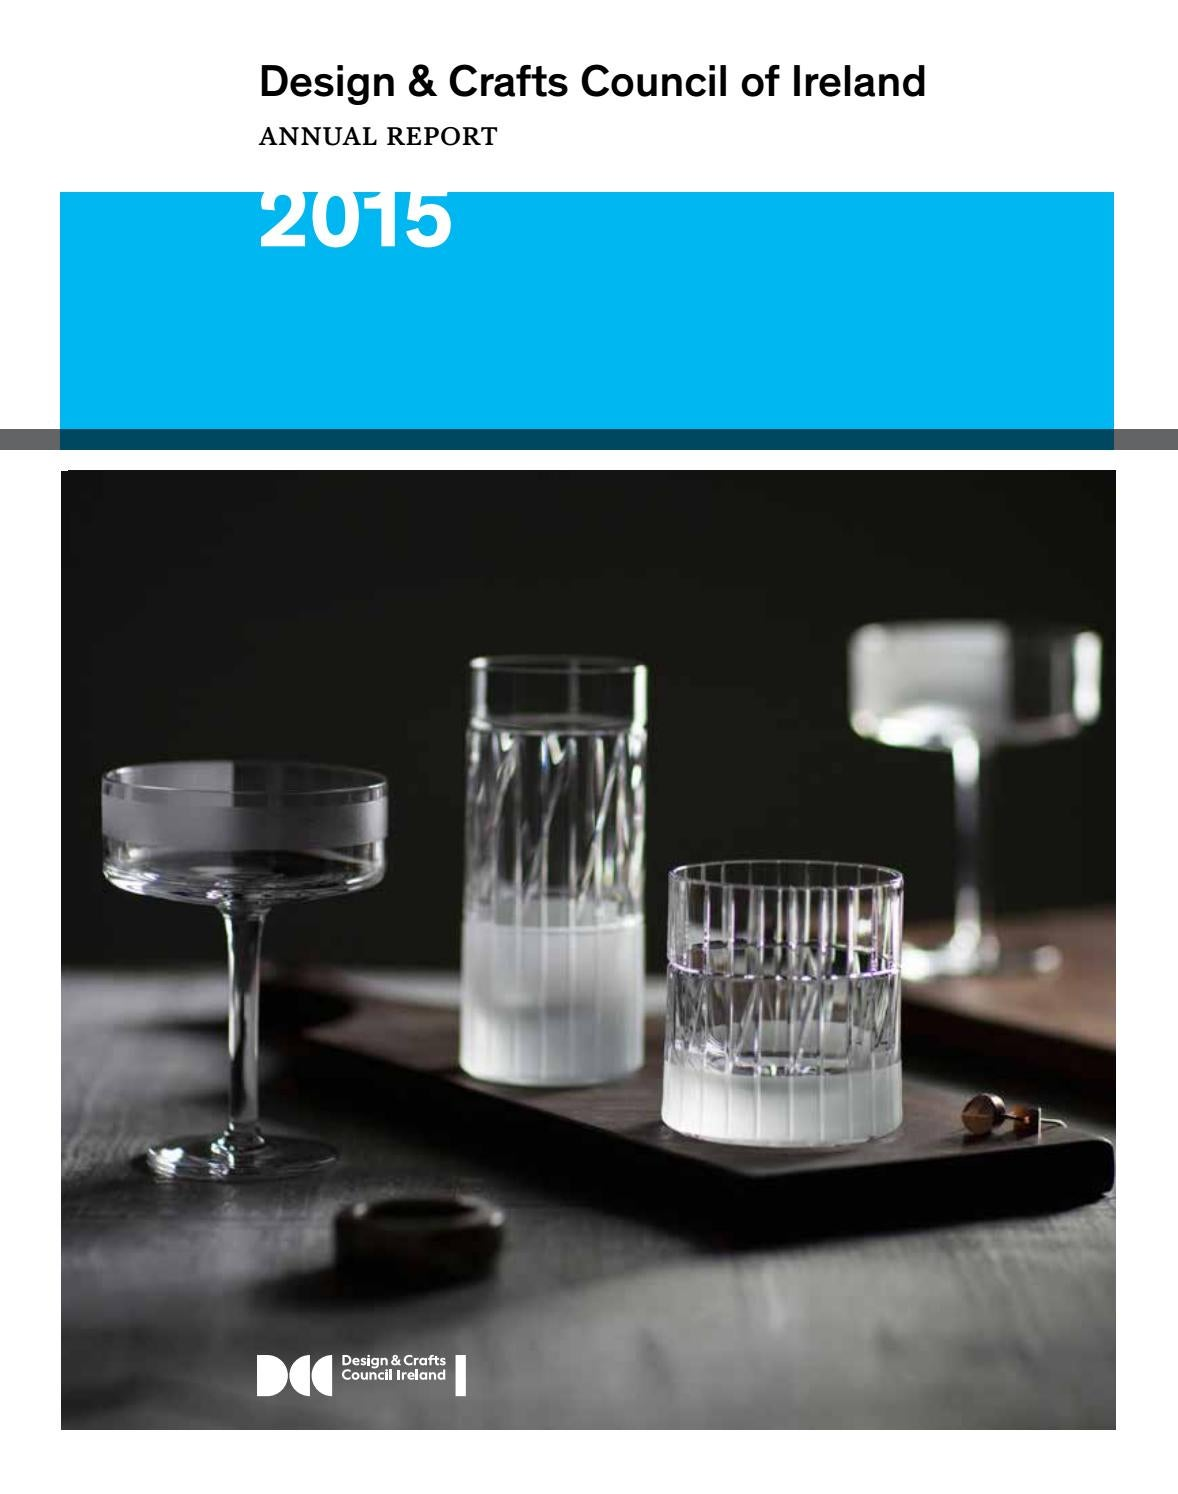 Design Crafts Council Of Ireland Annual Report 2015 By Focus Passenger Fuse Box Issuu